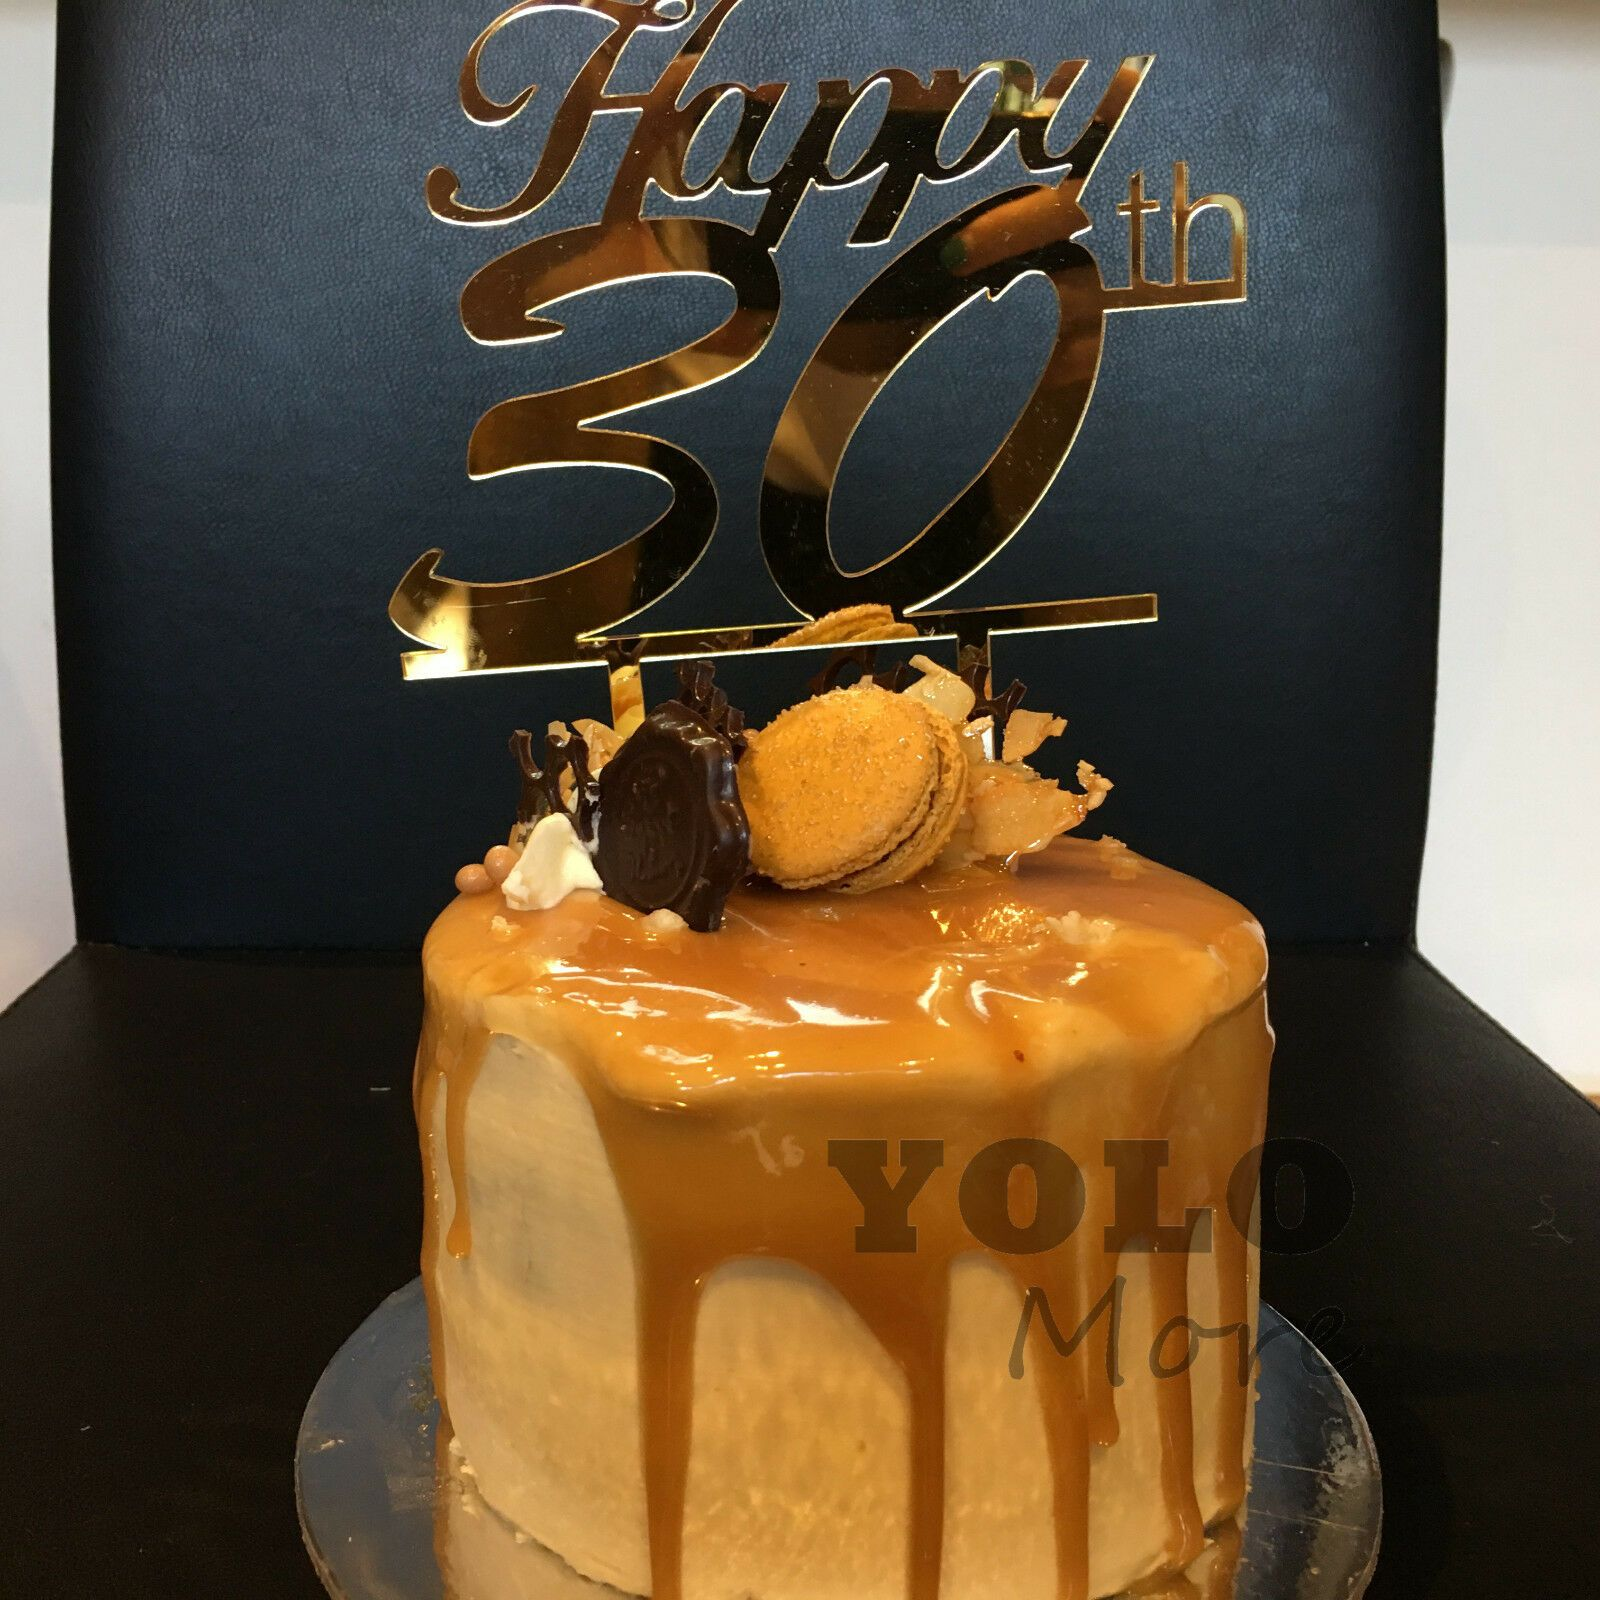 Details about happy 30th birthday acrylic cake topper gold